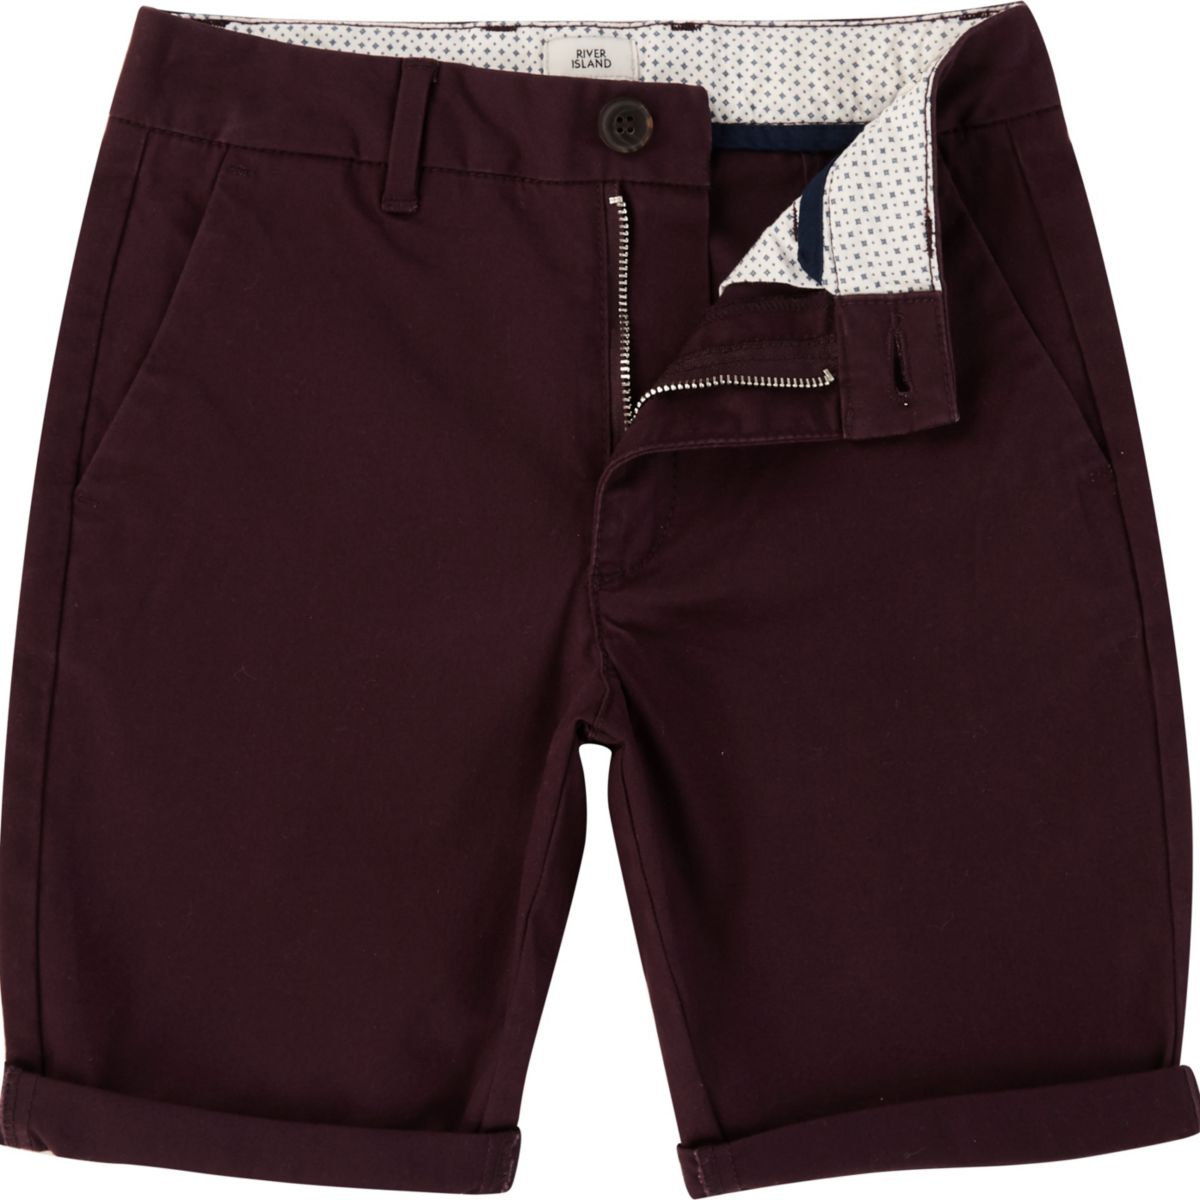 Boys purple chino shorts